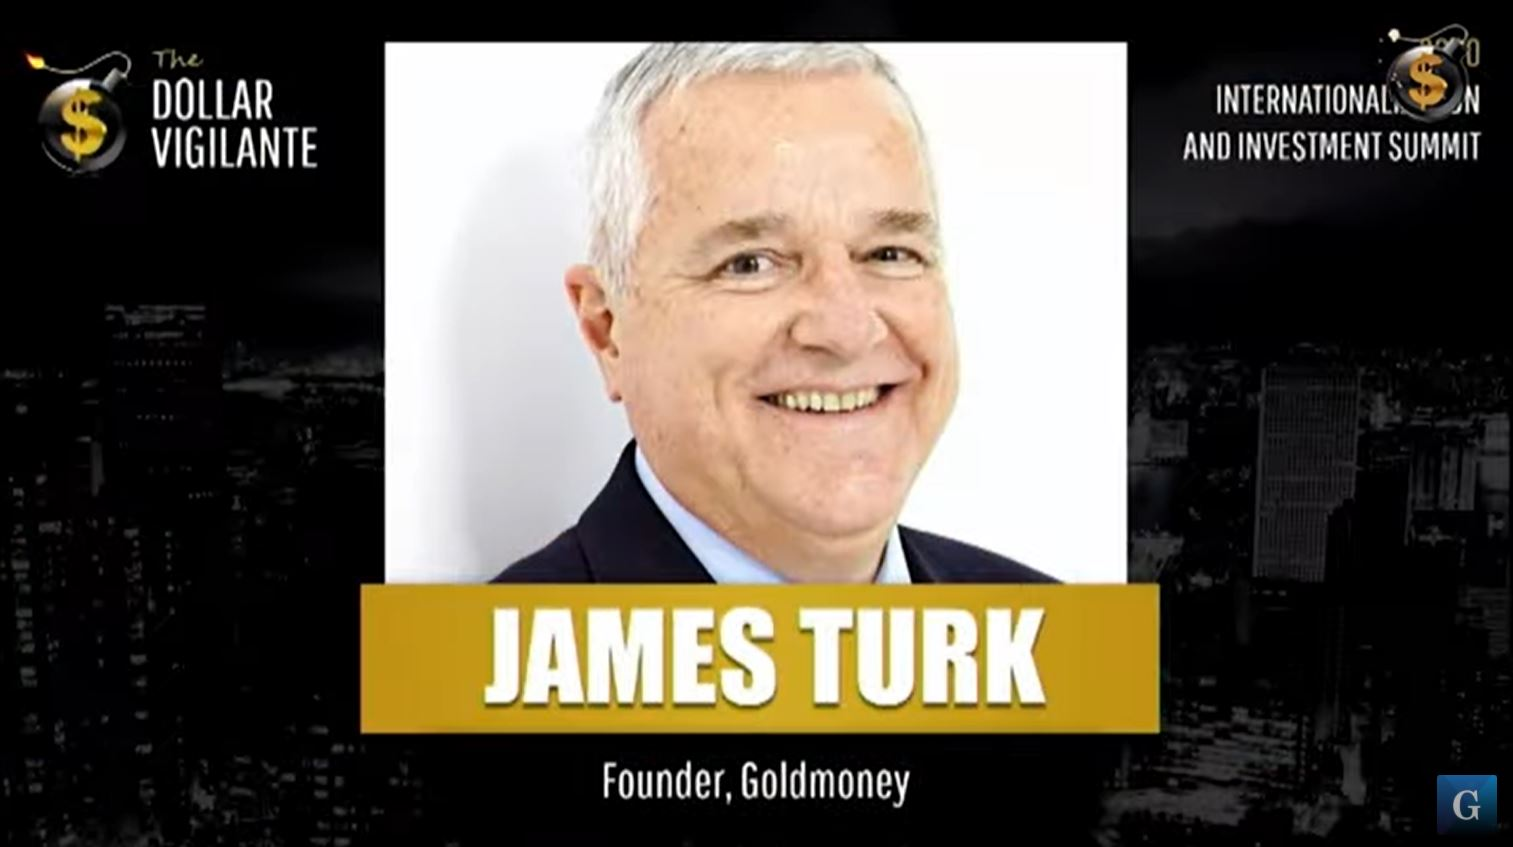 james-turk-goldmoney.jpg